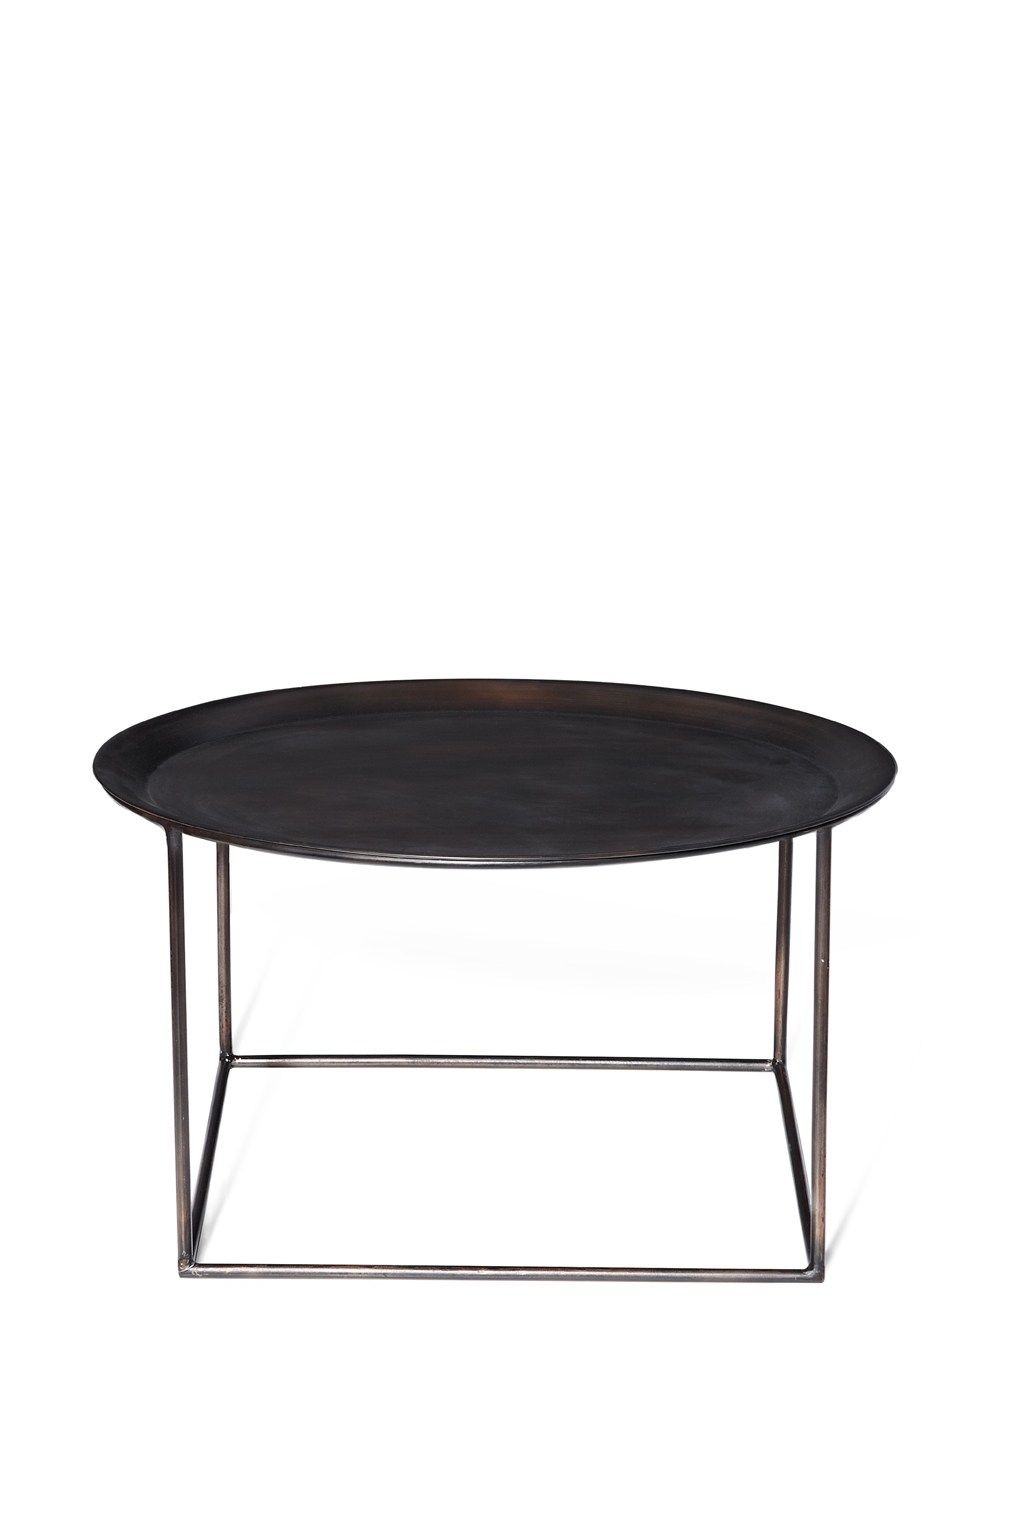 Round Steel Coffee Table Coffetable - 115567dd6787f222902e9ce261442619.jpg